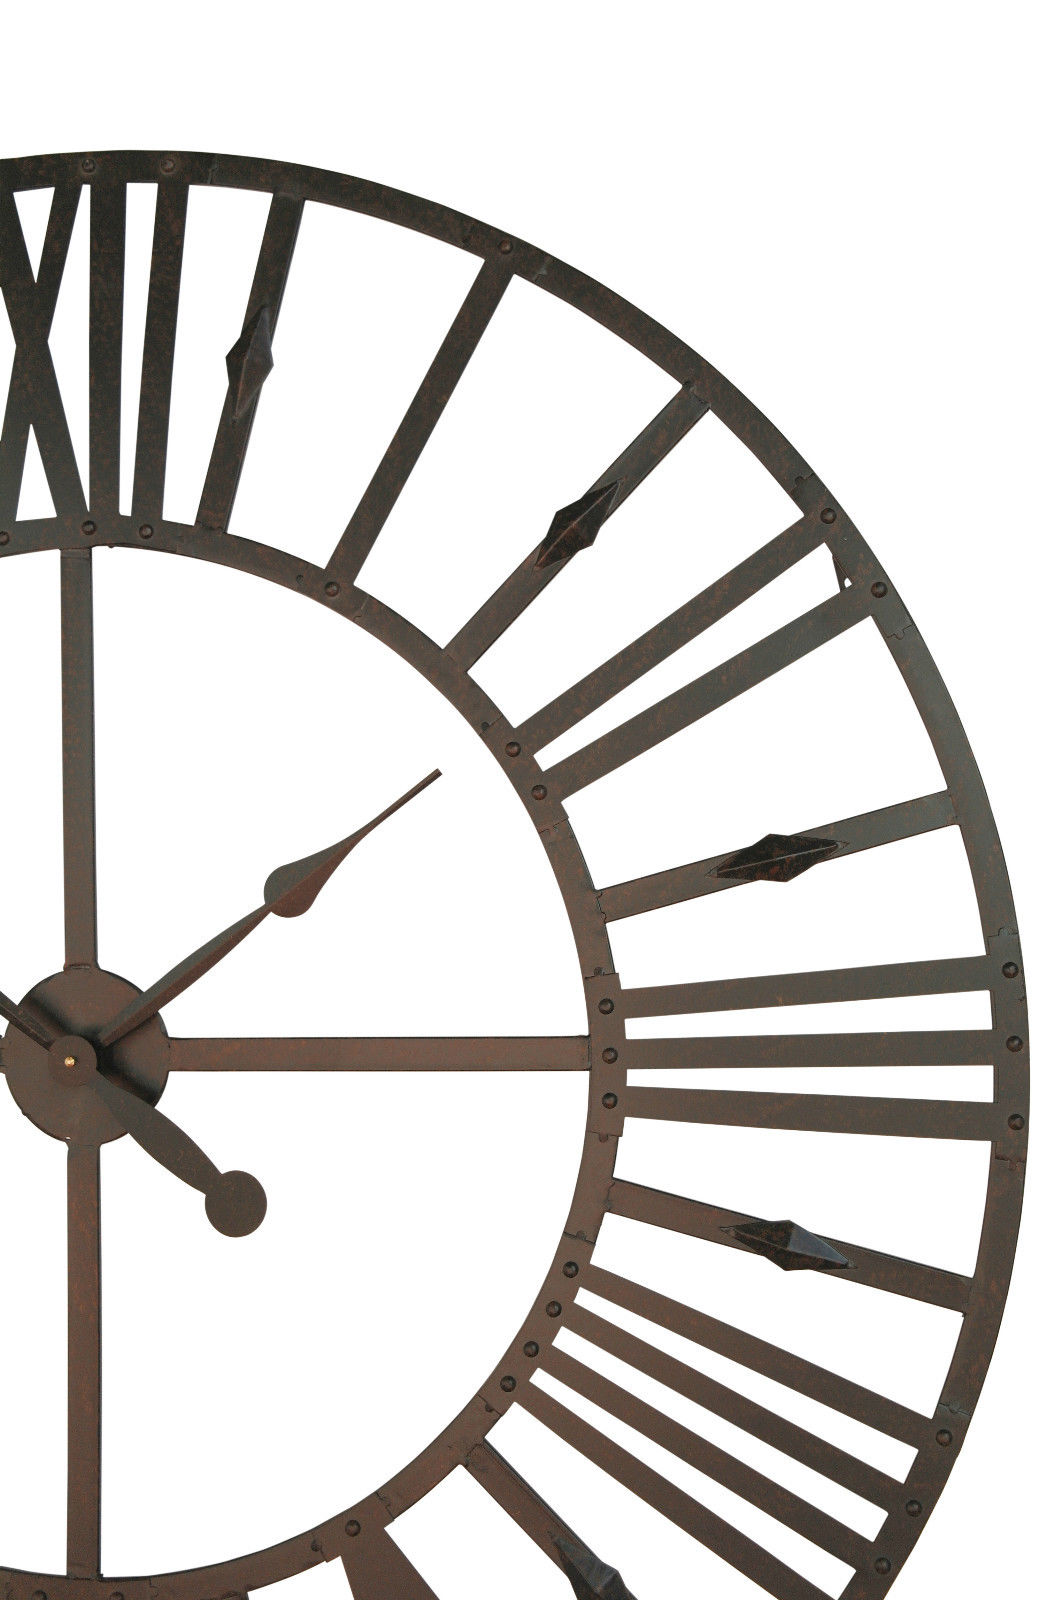 Rustic Large Roman Numerals Metal Wall Clock Furniture